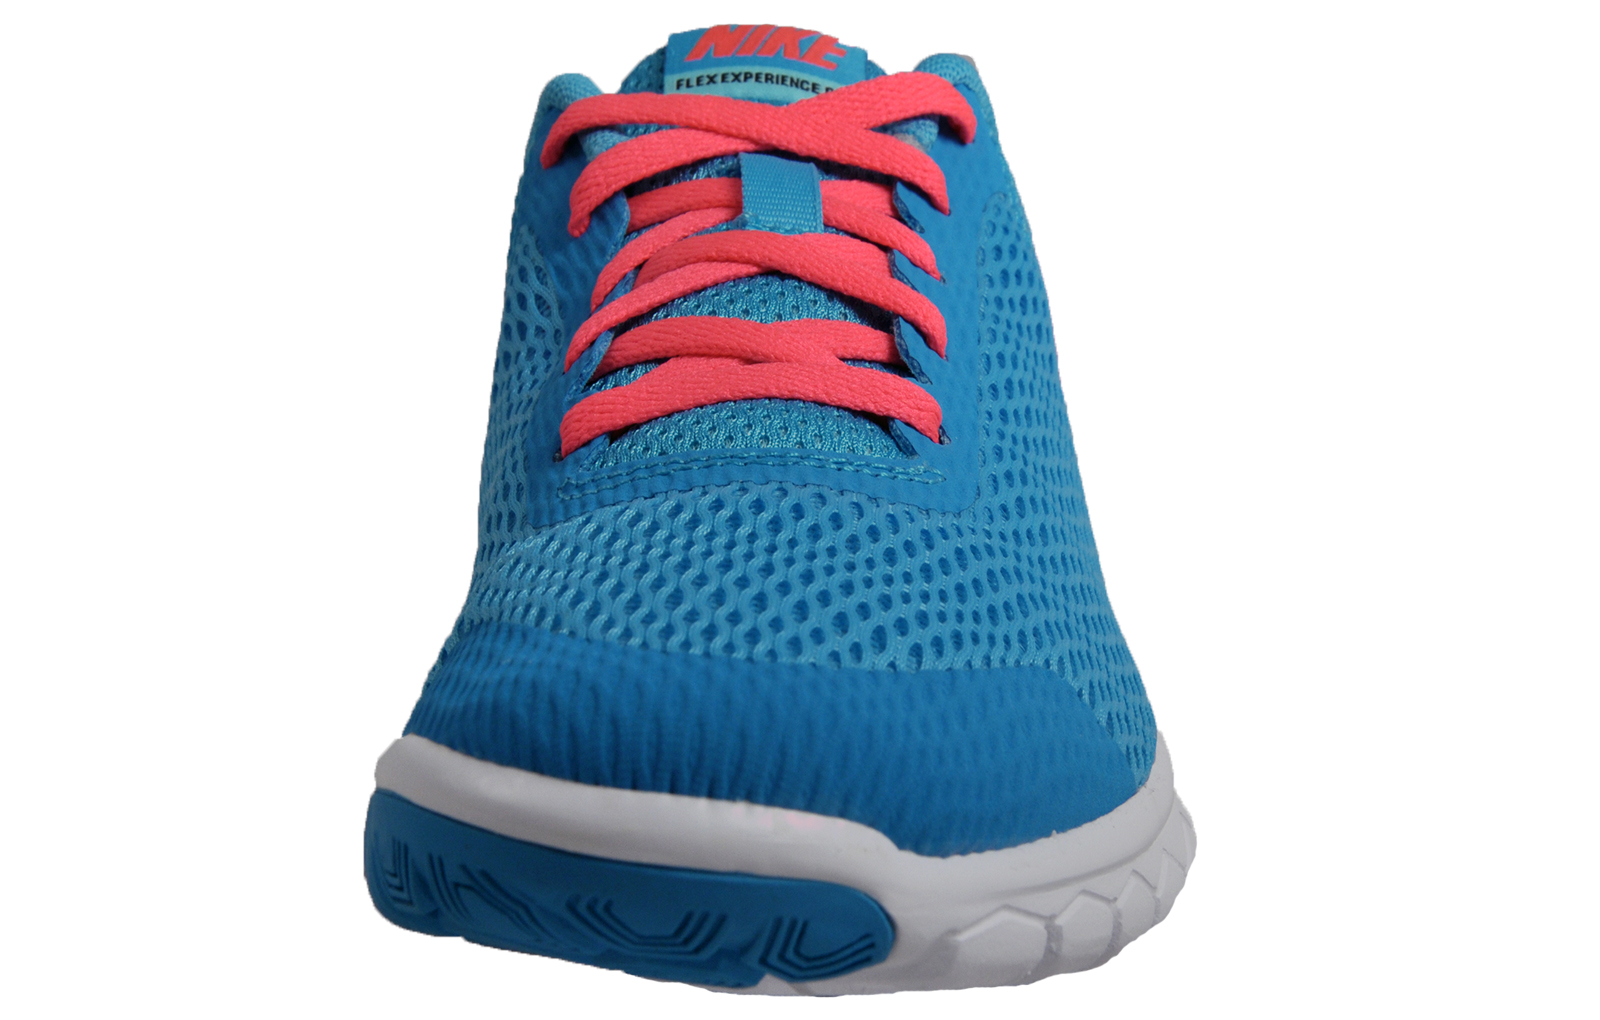 215417aebfcb8 Nike Flex Experience 5 Womens Girls Running Shoes Fitness Gym ...